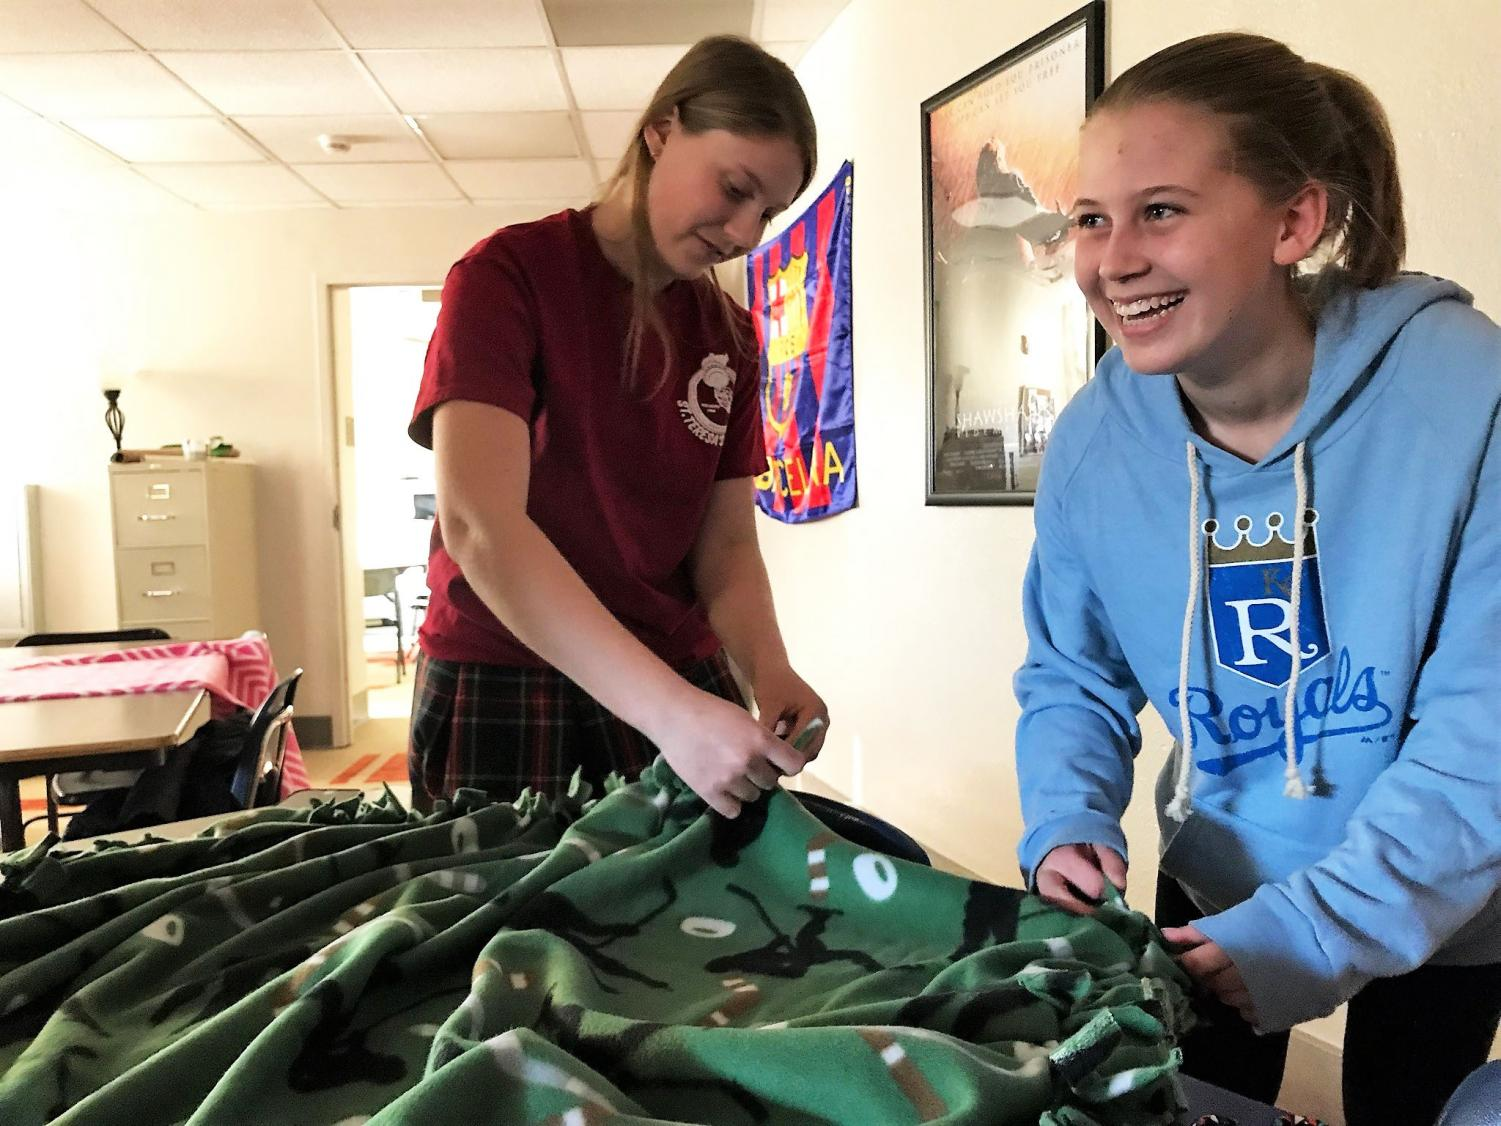 Junior Holy Phalen and senior Megan Warnecke worked together on a blanket during activity Feb. 2. Rotary is an extracurricular dedicated to service. photo by Gabrielle Pesek